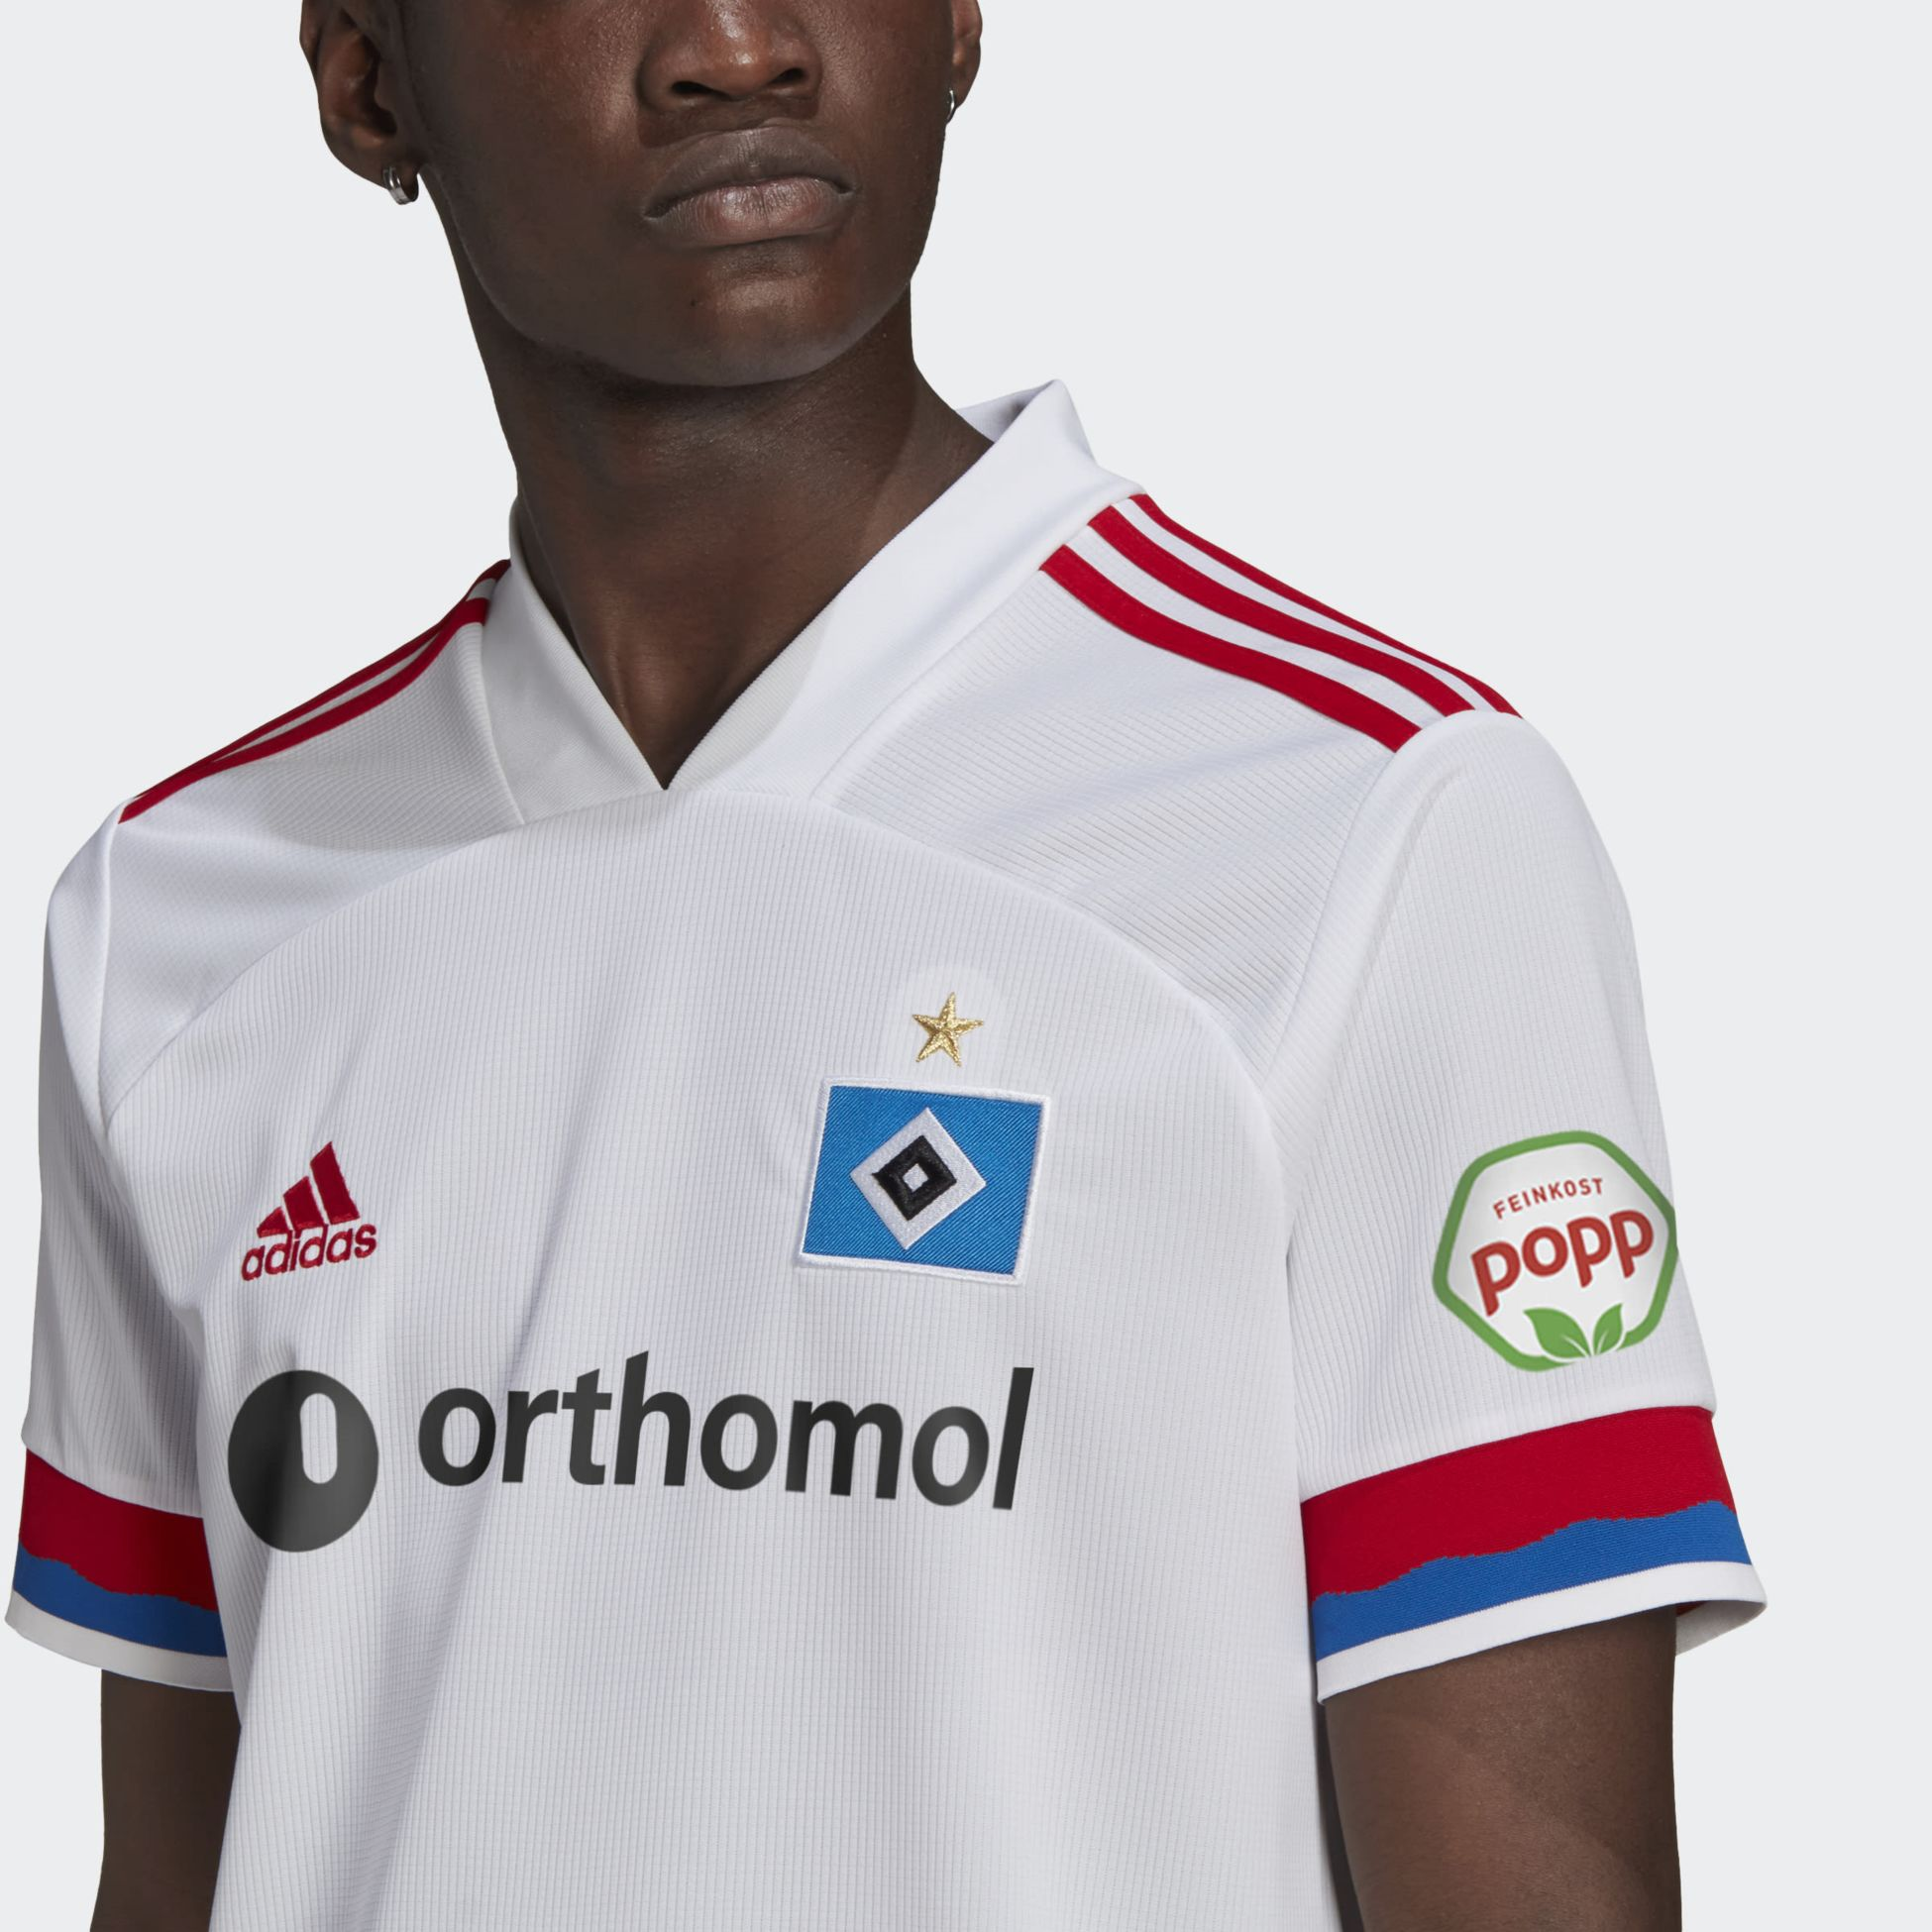 355699101106, Hamburger SV 20/21 Home Jersey, ADIDAS, Detail